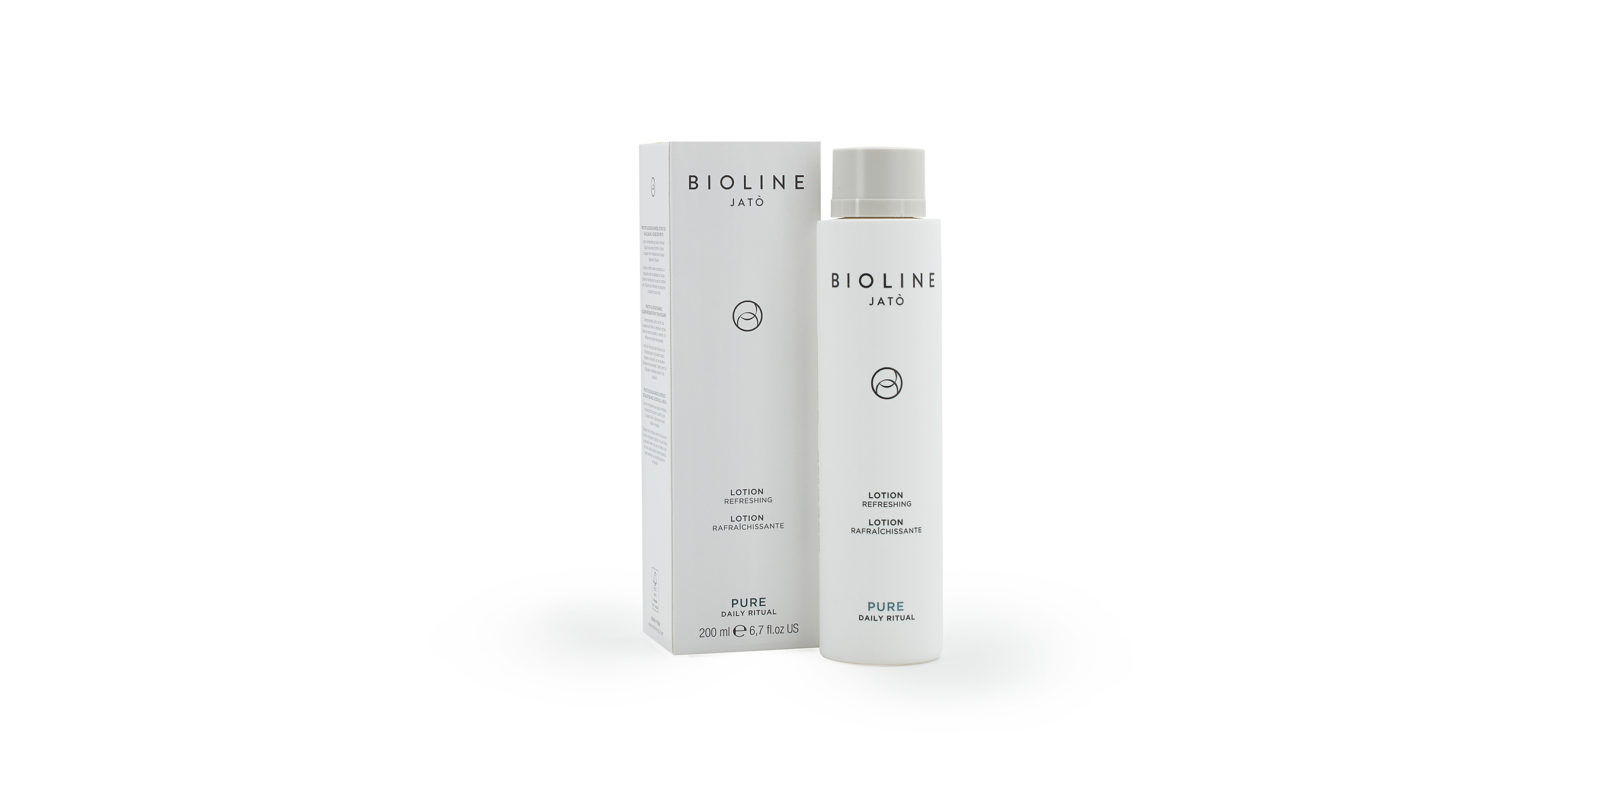 Bioline Jatò Pure+ Lotion Refreshing